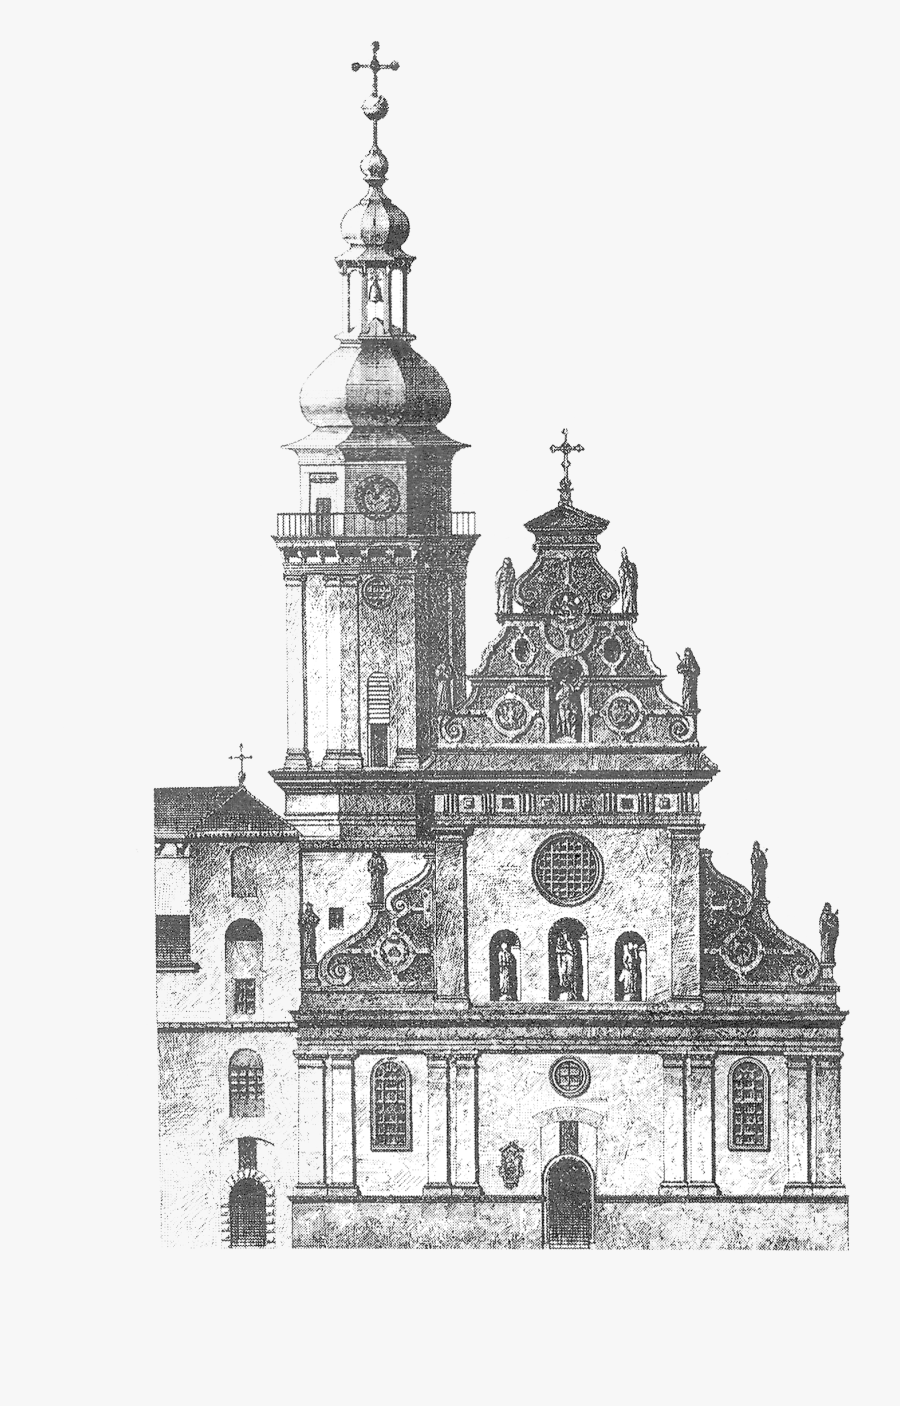 Transparent Church Steeple Clipart Black And White - St Basil Cathedral Metal Earth, Transparent Clipart